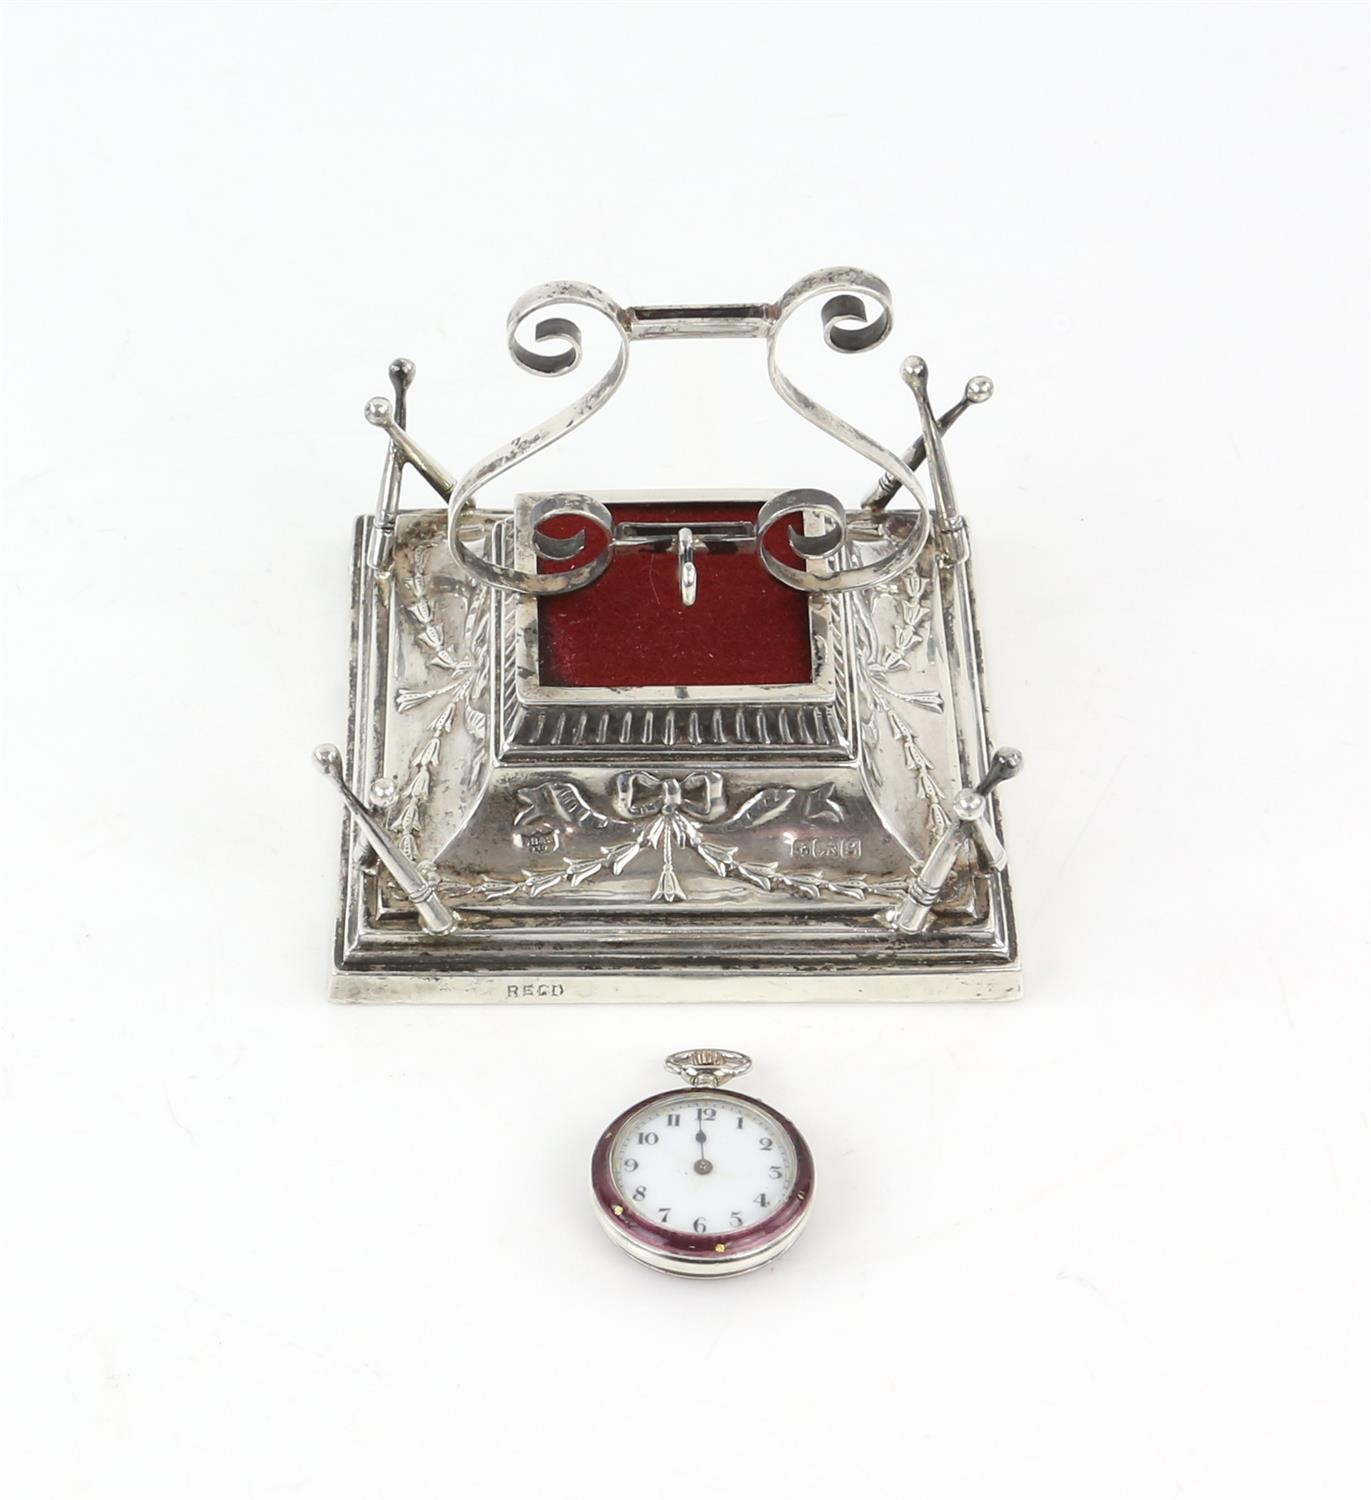 Art Nouveau combination silver lyre form ring tree, jewellery holder, watch stand and pin cushion